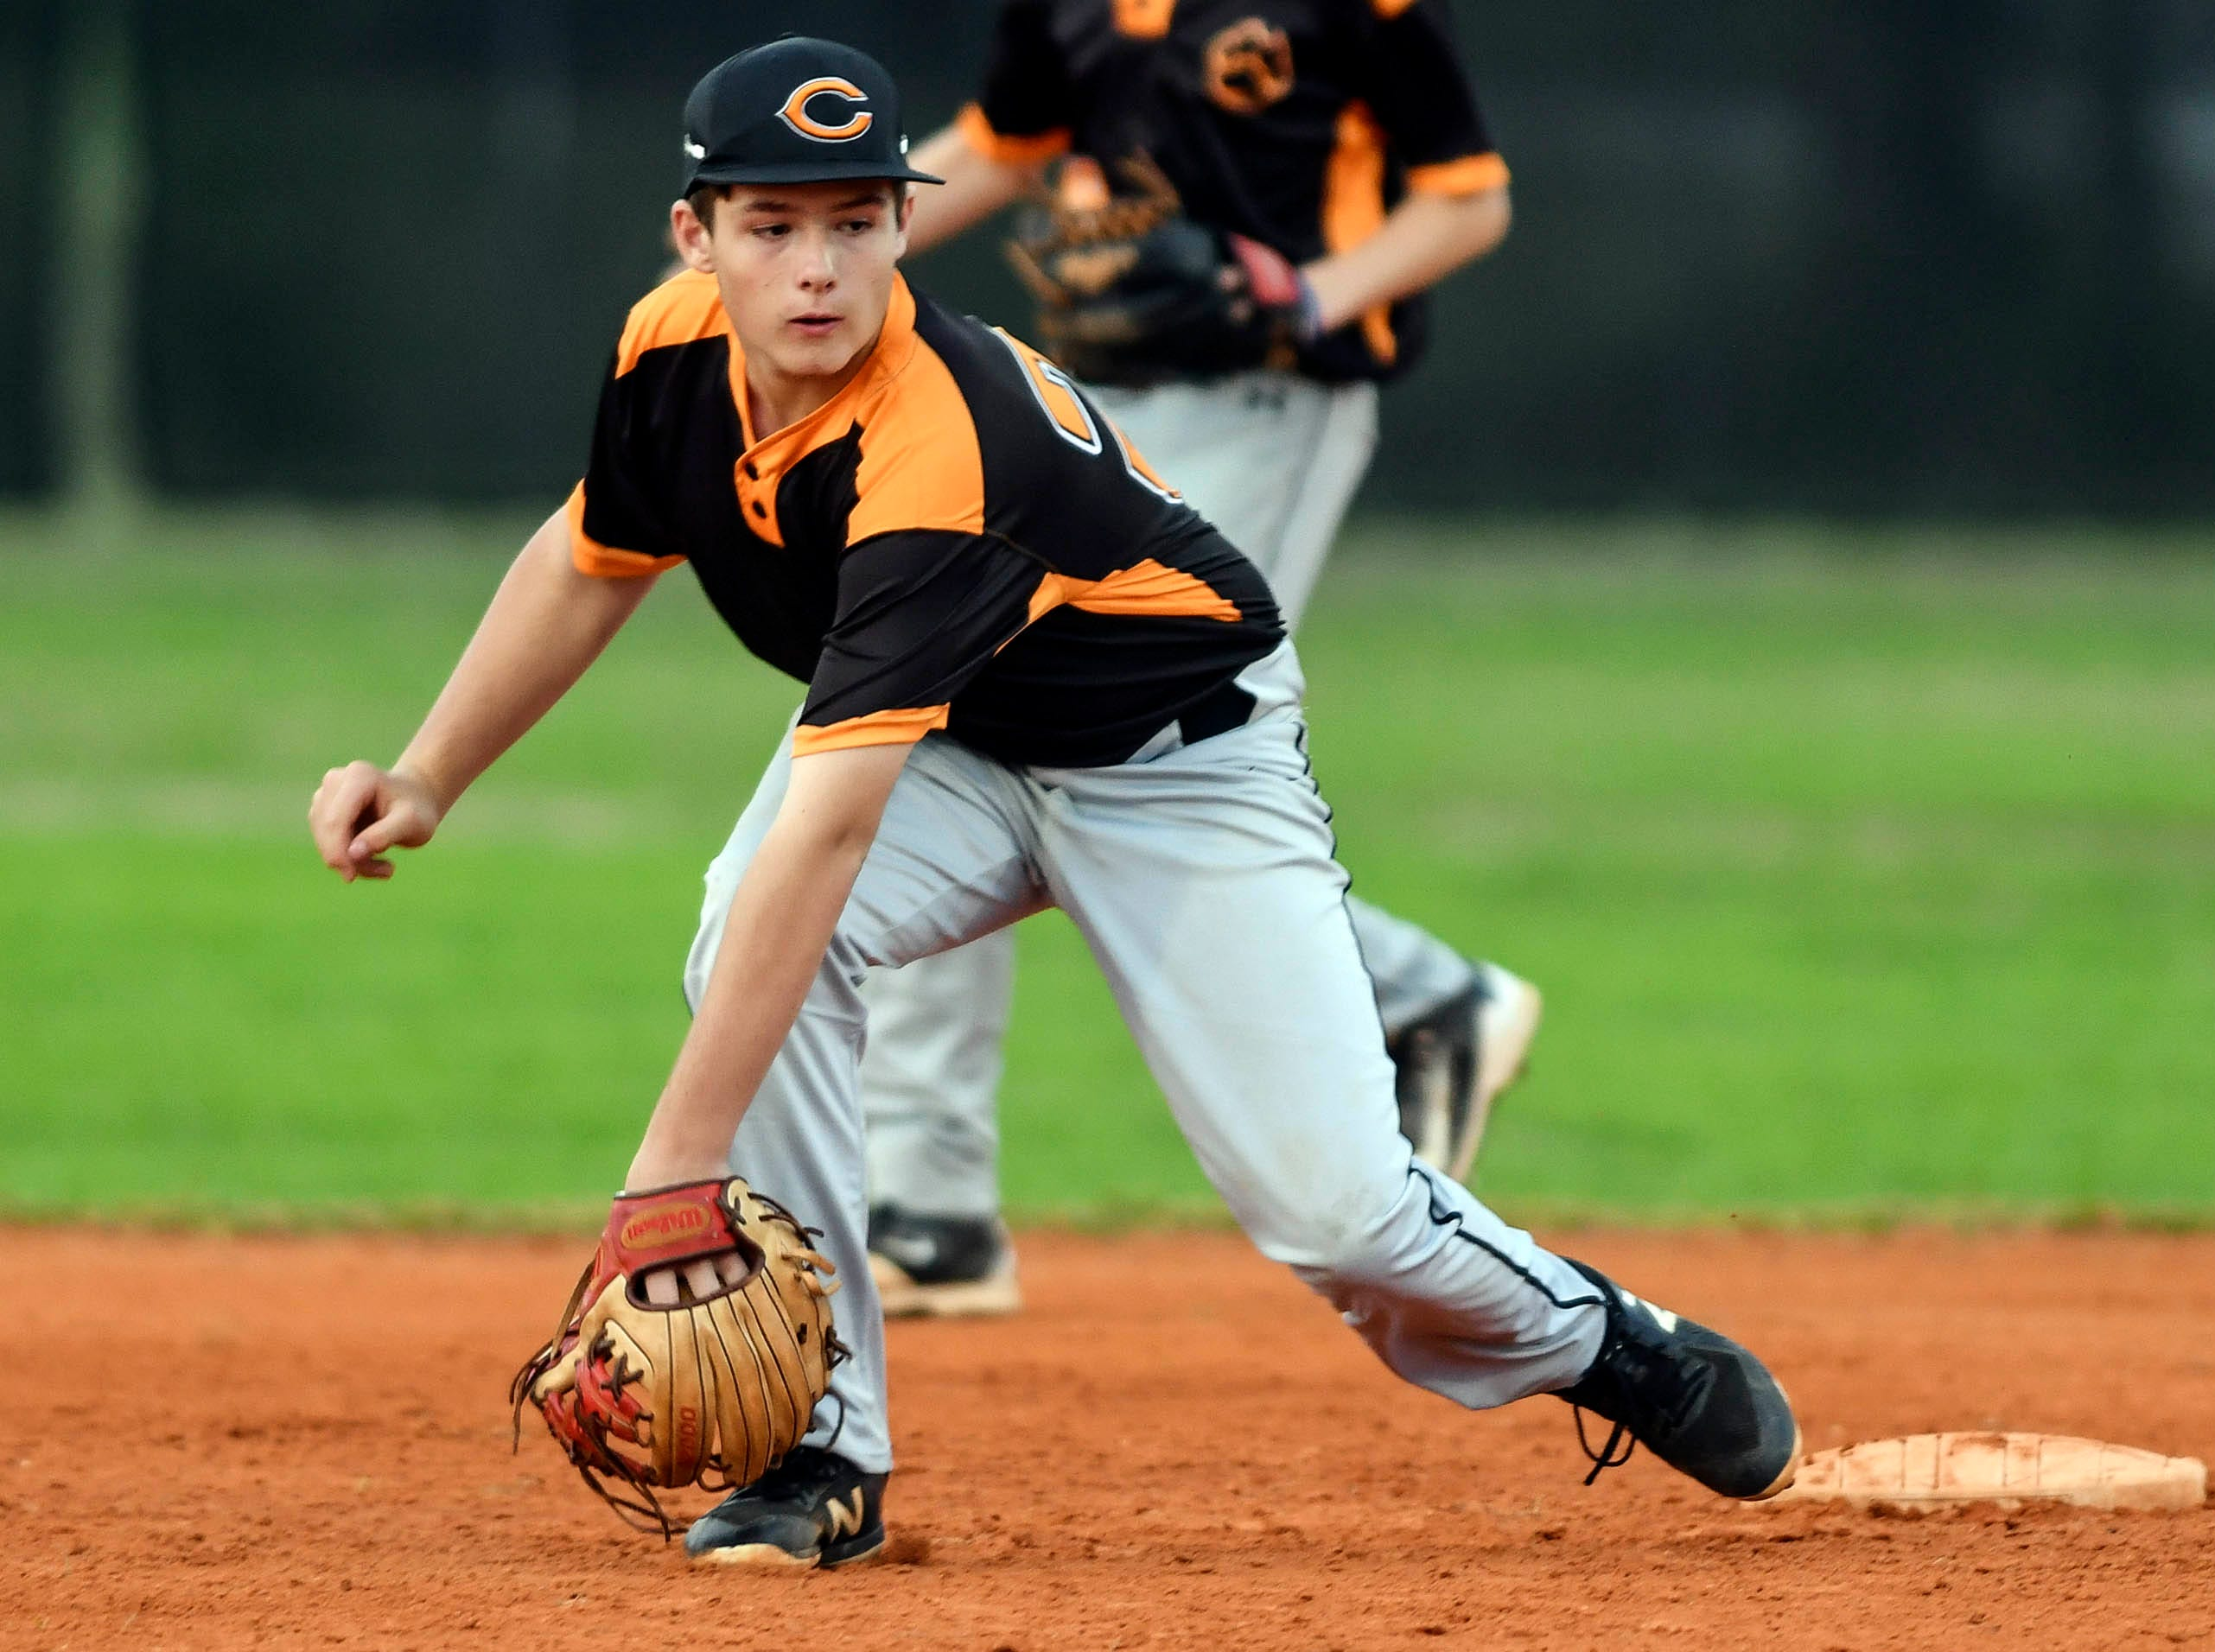 Cocoa's Ronnie Adams fields a grounder during Friday's game against Titusville.